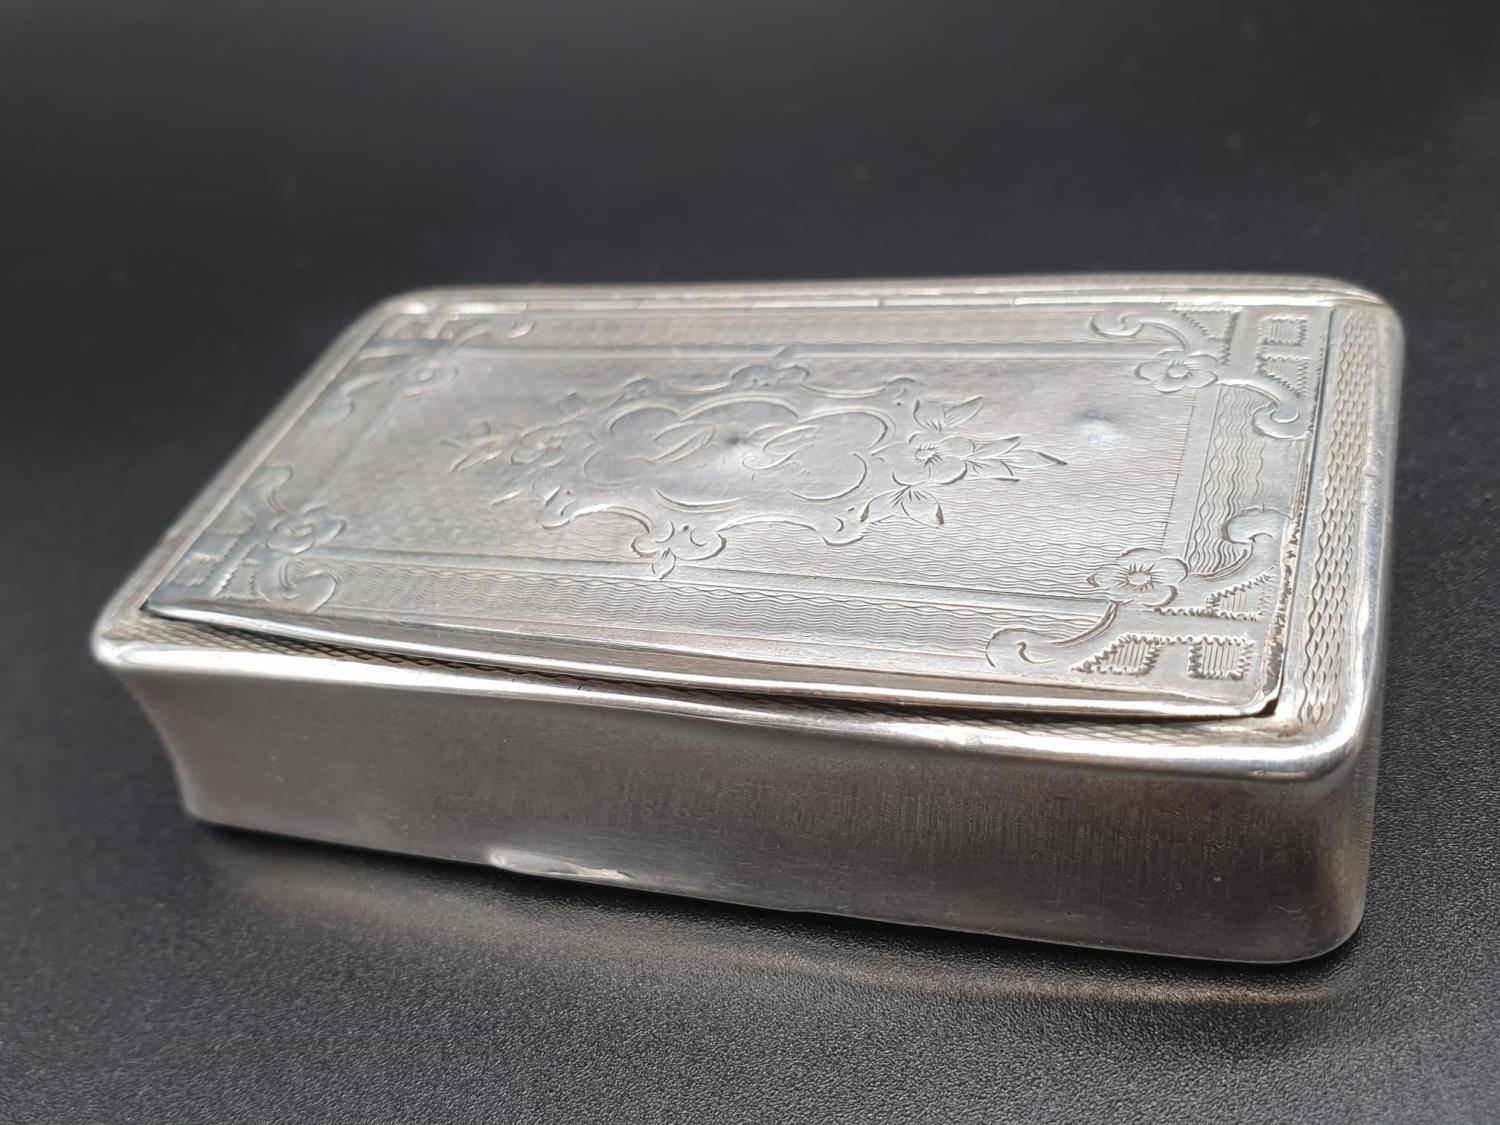 Antique French Gilt Solid Silver 1880s Snuff Box. 7.8cm x 4.5. 54.5g - Image 2 of 9